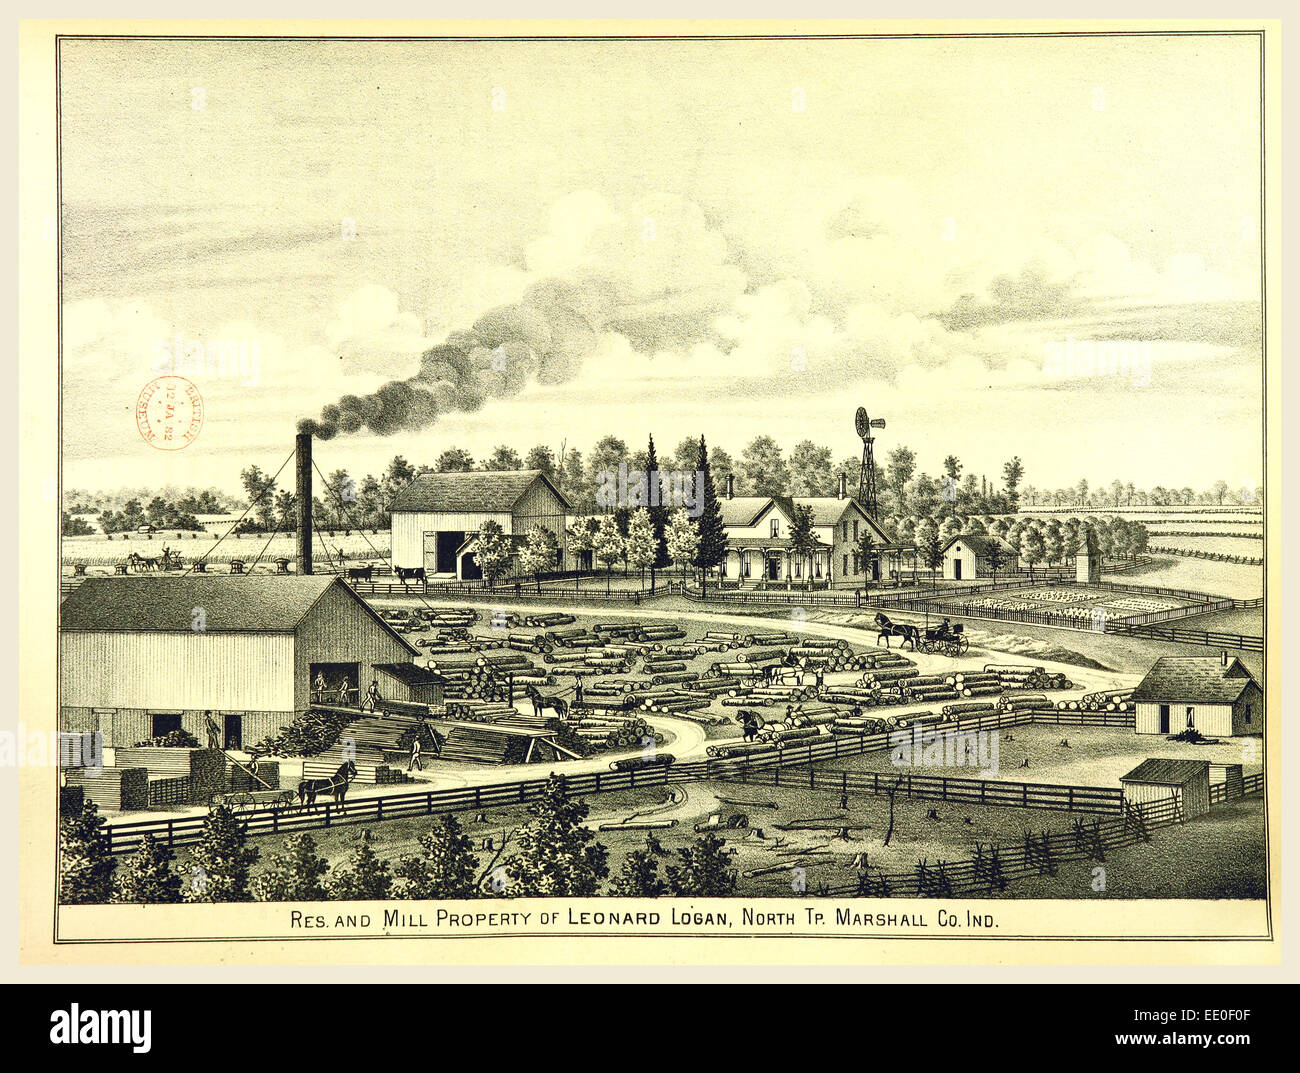 Mill, History of Marshall county, Indiana, 1836 to 1880, 19th century engraving, US, America - Stock Image